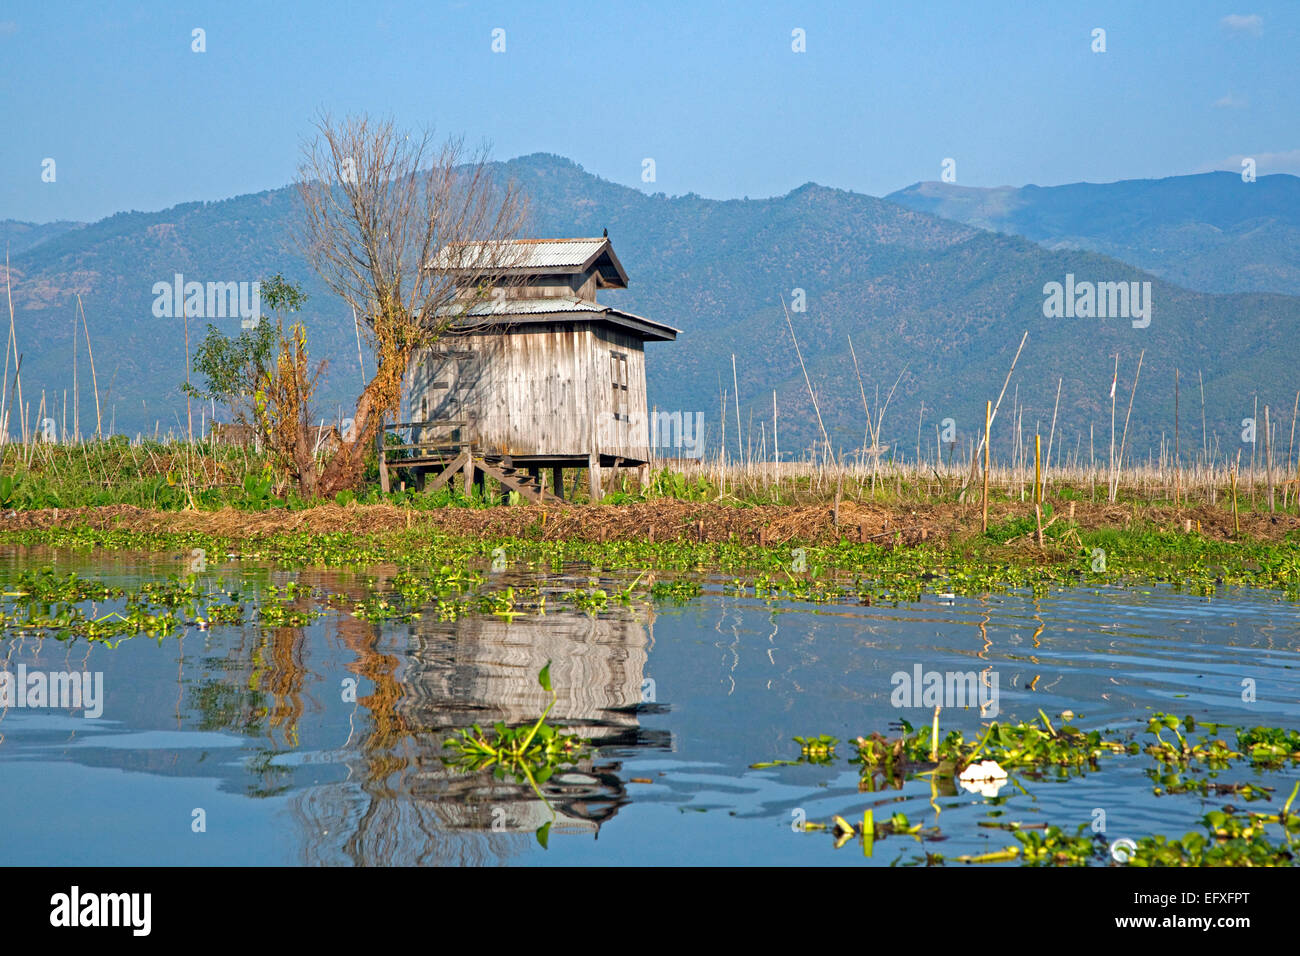 Traditional wooden warehouse on stilts in the Inle Lake, Nyaungshwe, Shan State, Myanmar / Burma - Stock Image